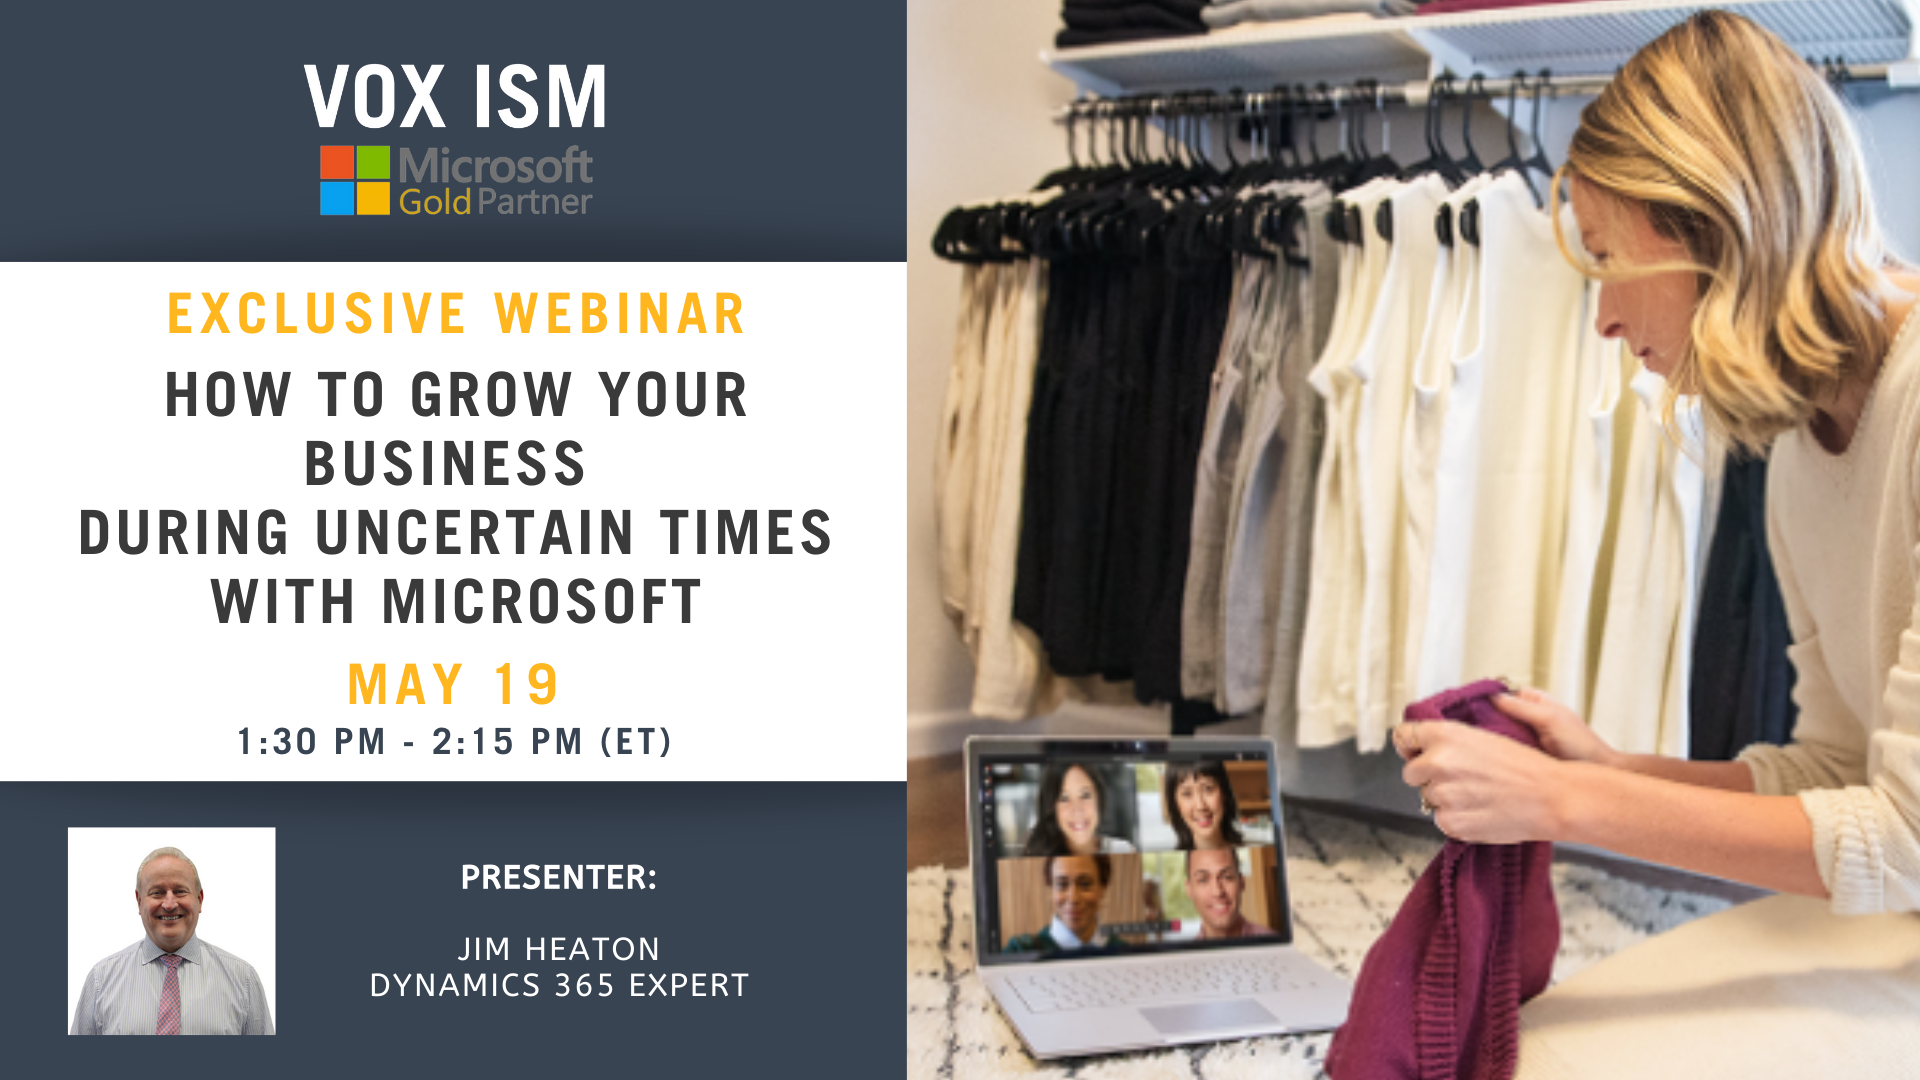 How to Grow Your Business During Uncertain Times with Microsoft - May 19 - Webinar